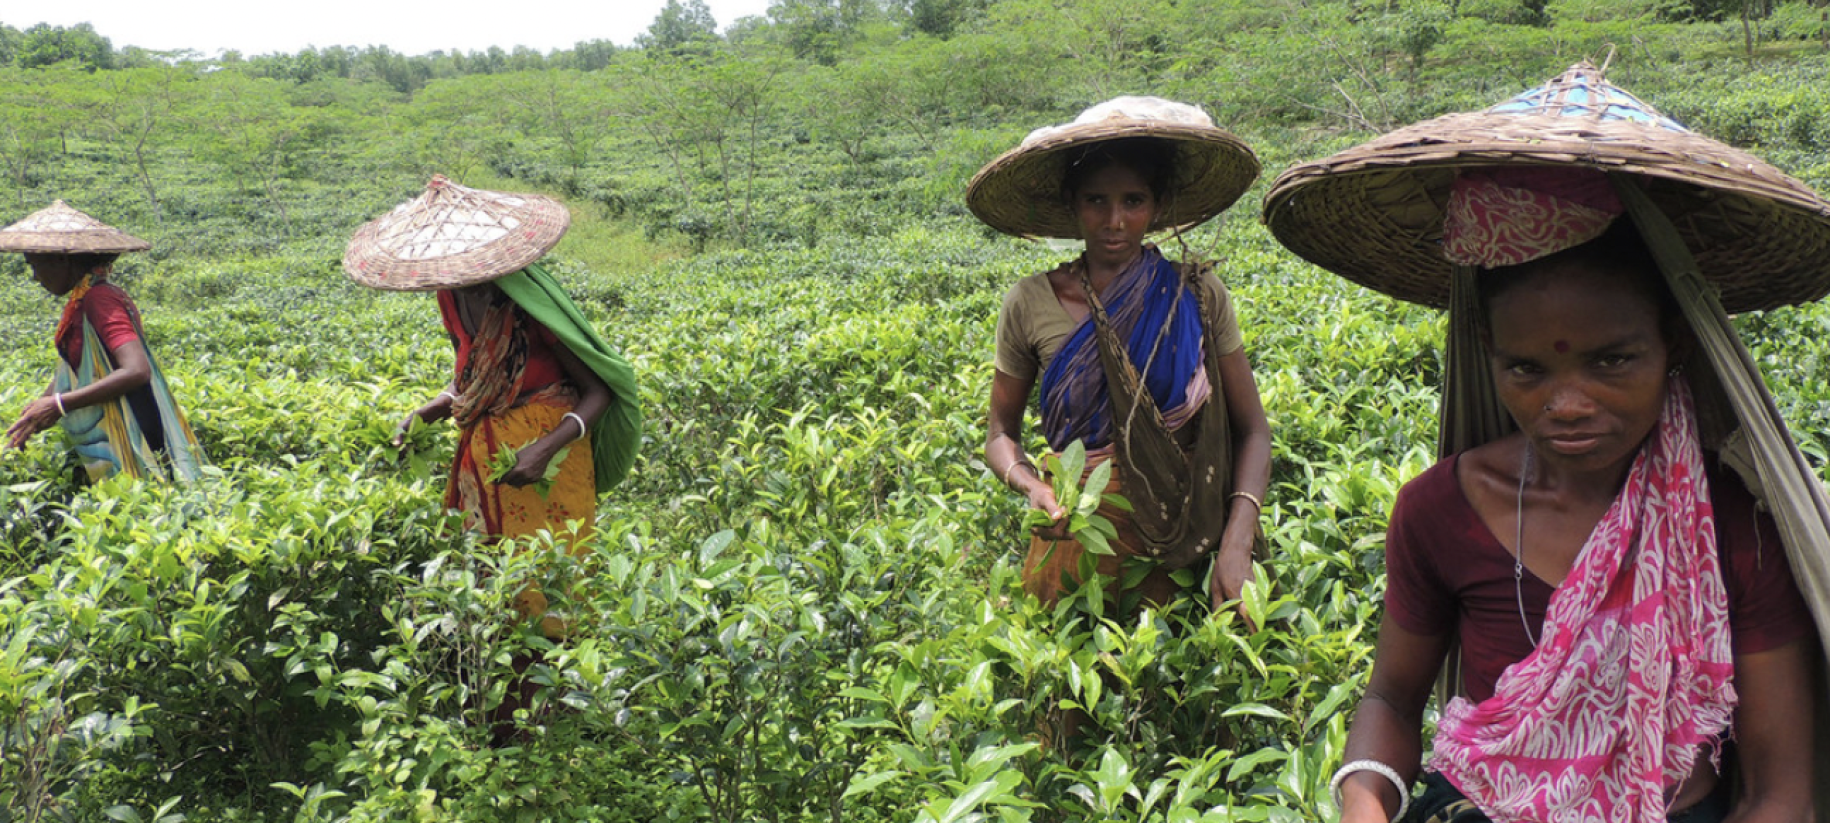 Four young women in bright colors and hats stand in a green tea field.